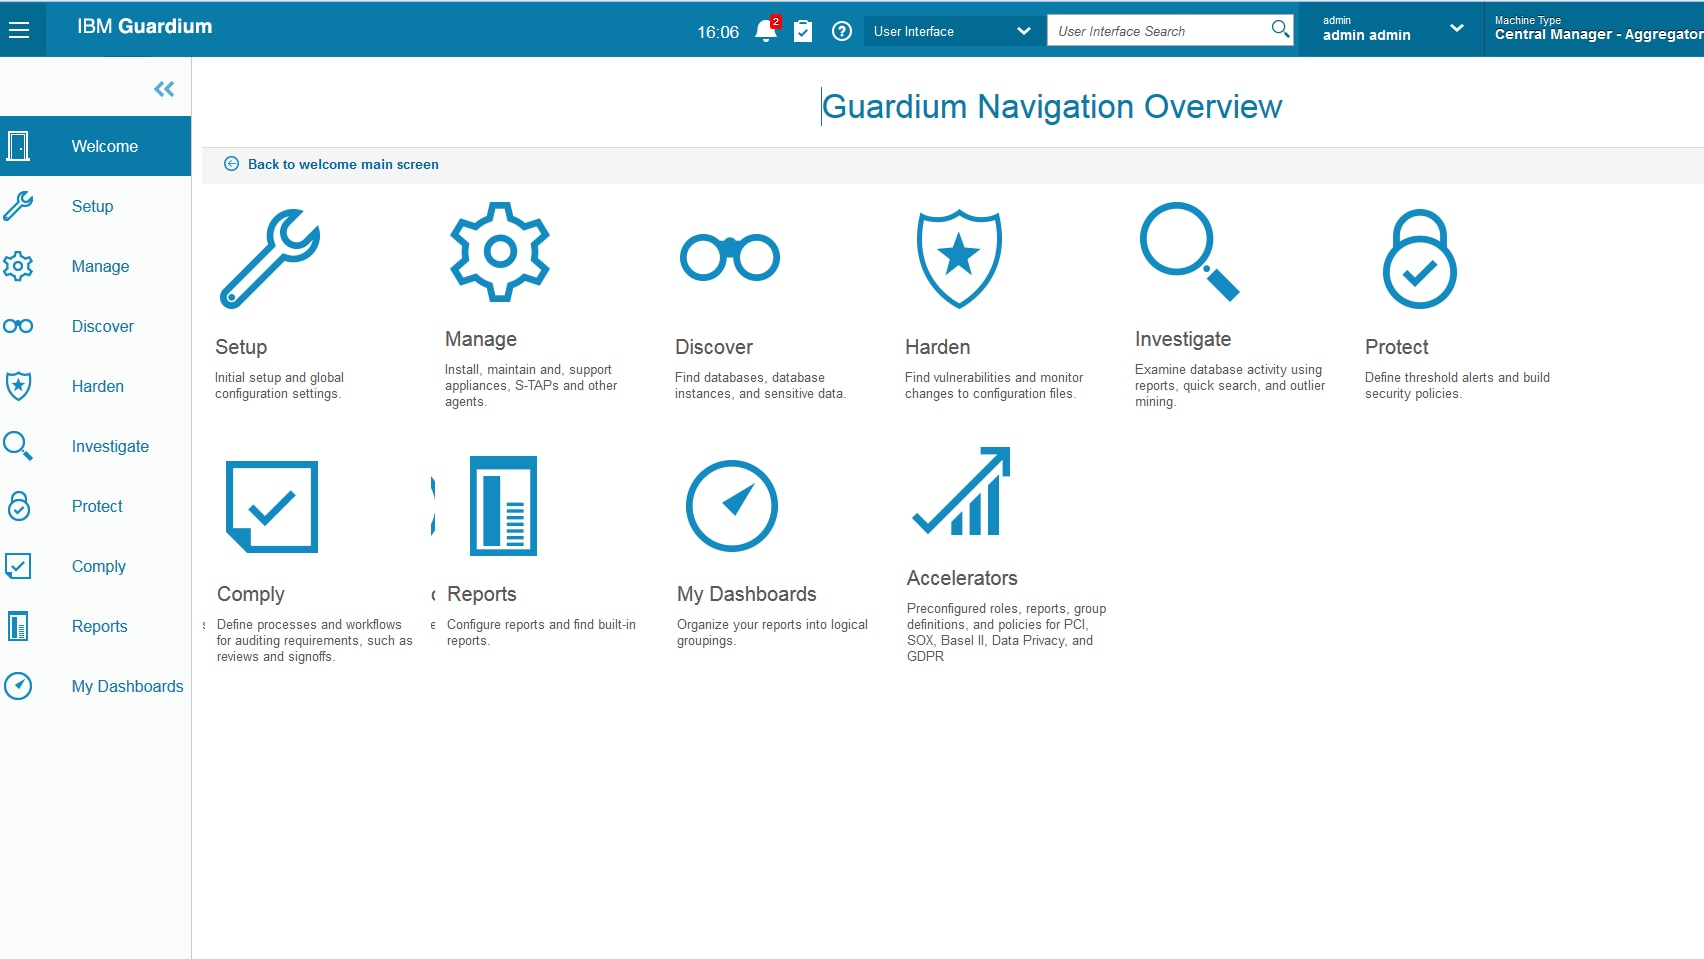 Guardium navigation overview